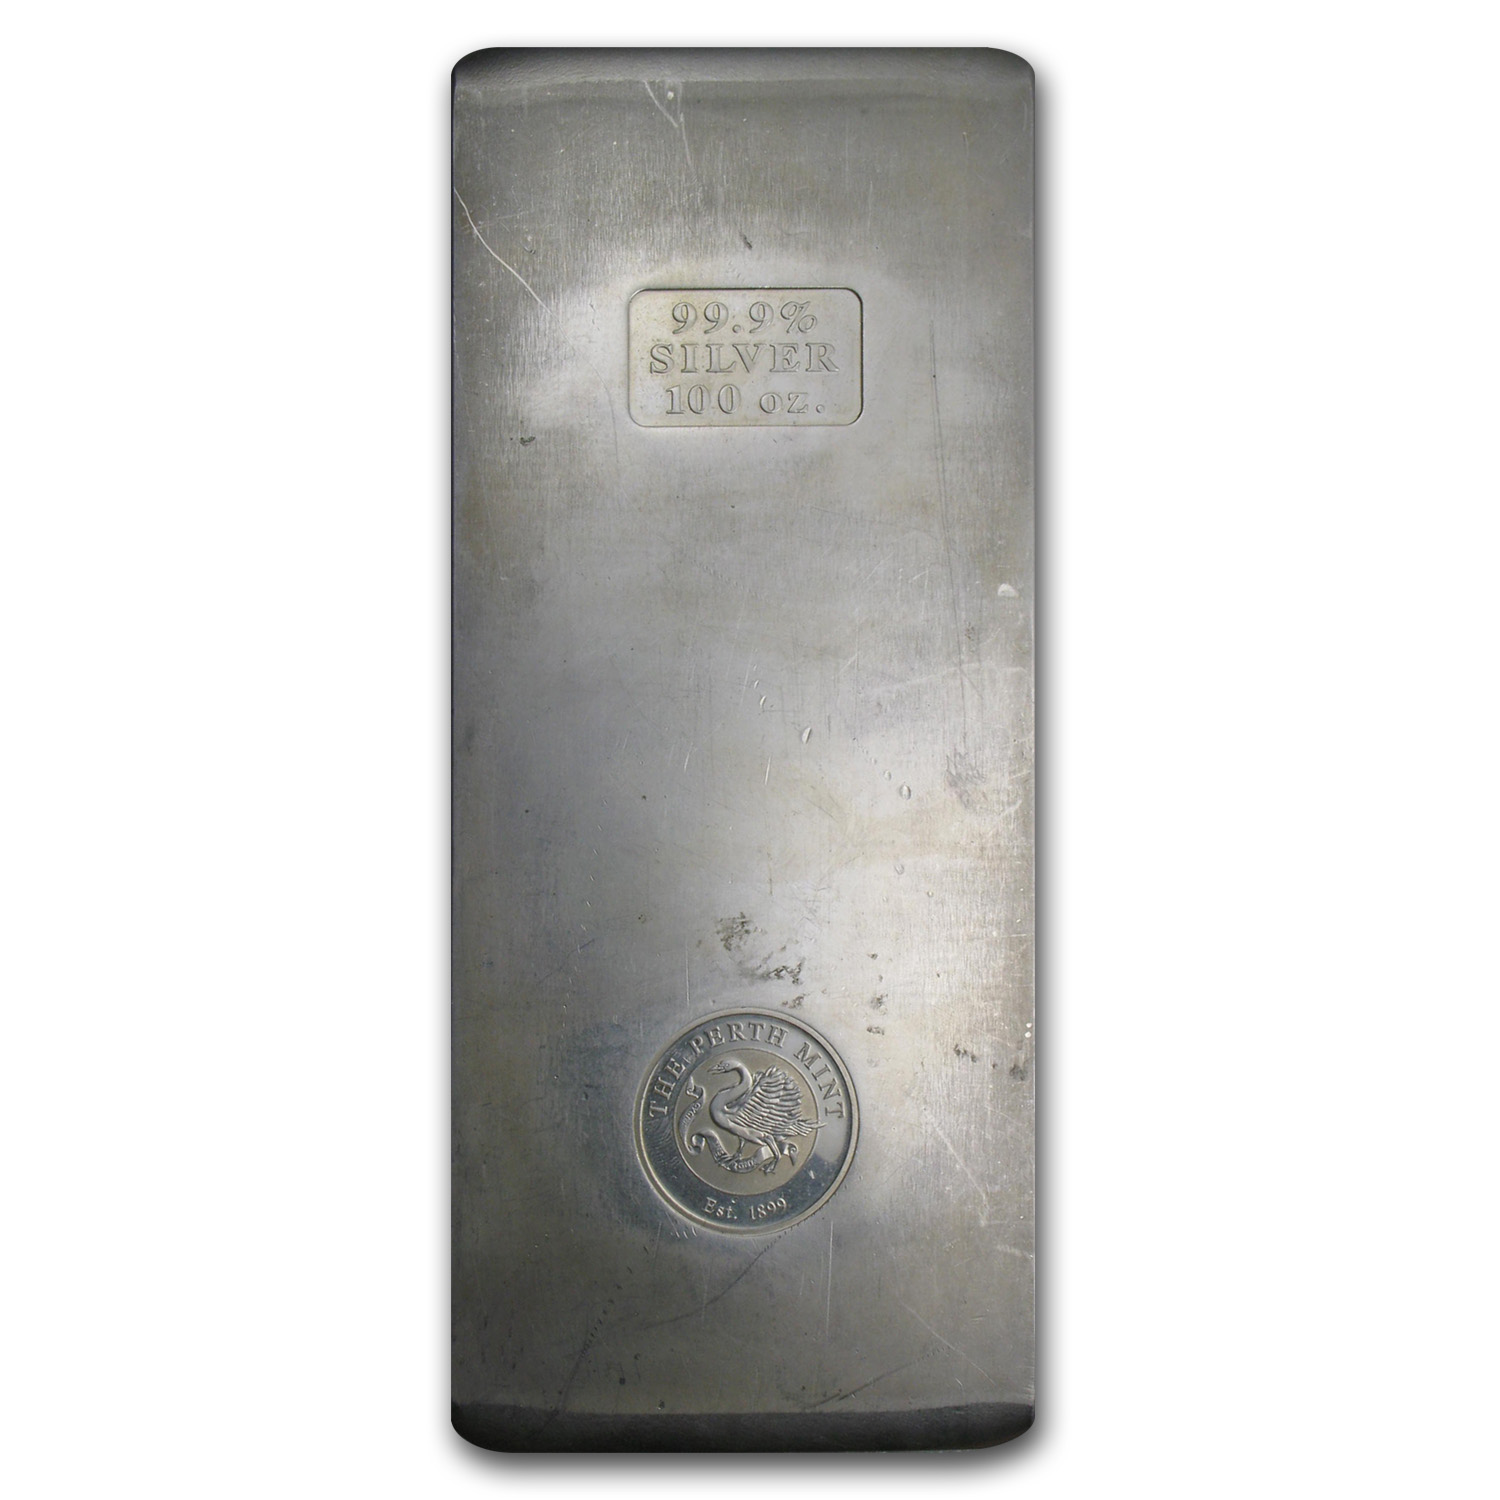 100 oz Silver Bar - Perth Mint (Vintage/Pressed)